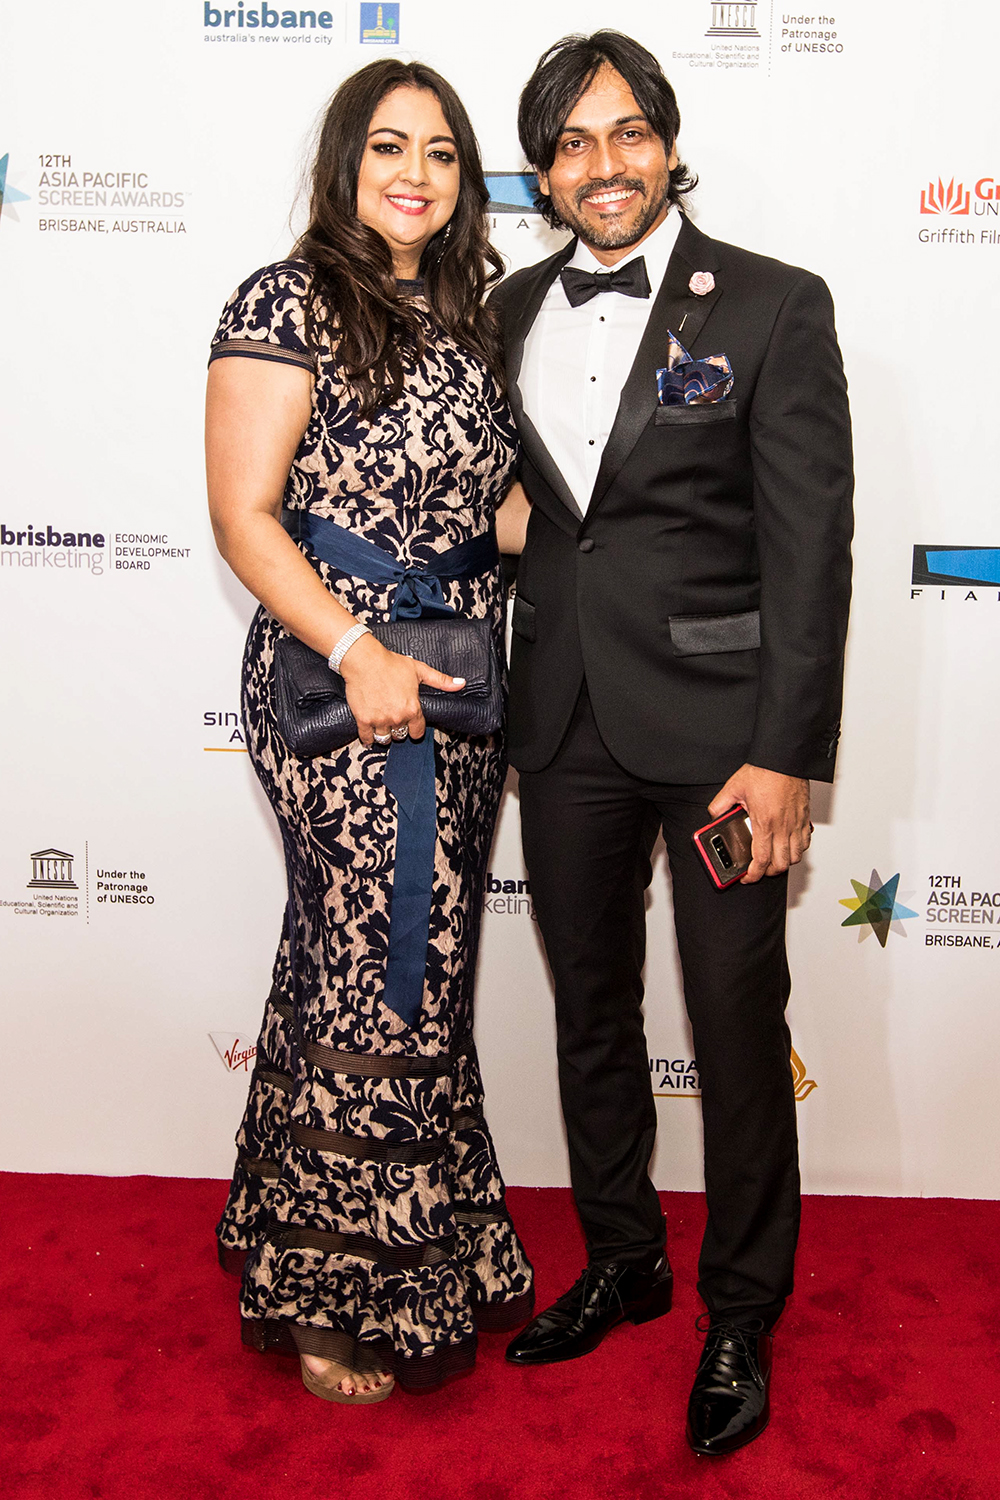 Shweta and Akheel from Starfire Jewellery attend the Red Carpet Event APSA held in Brisbane